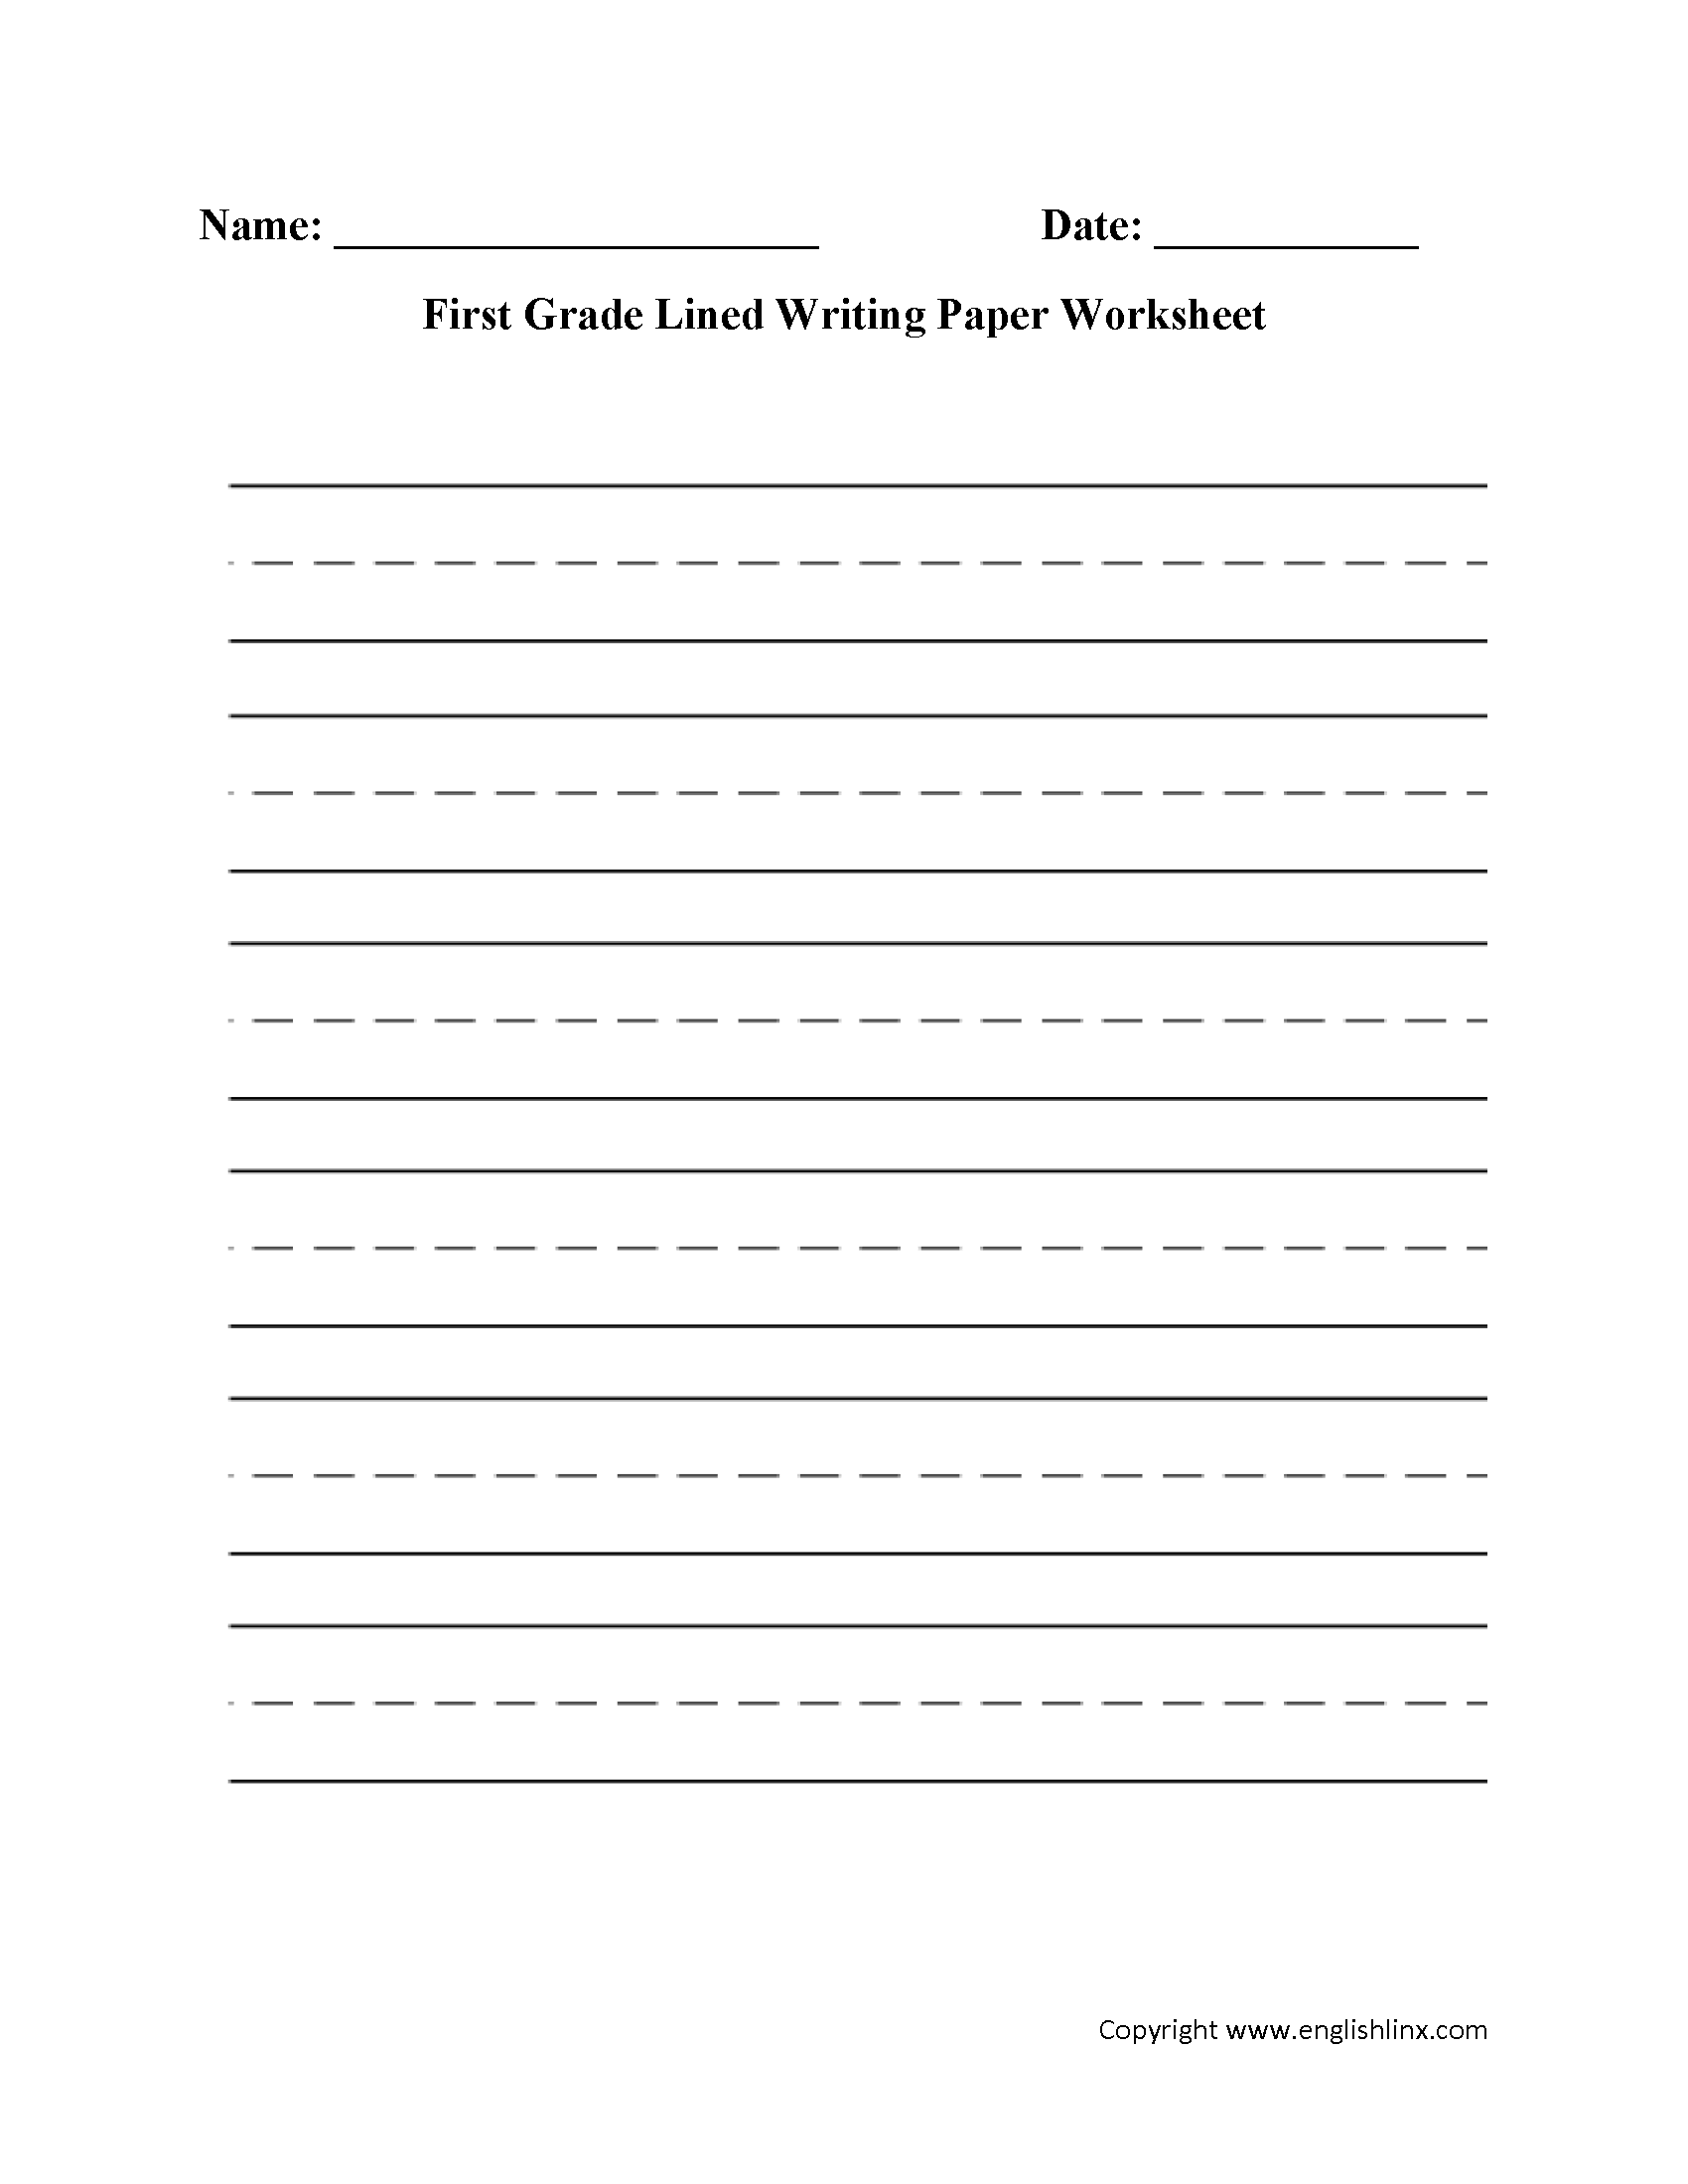 First Grade Lined Writing Paper Worksheet